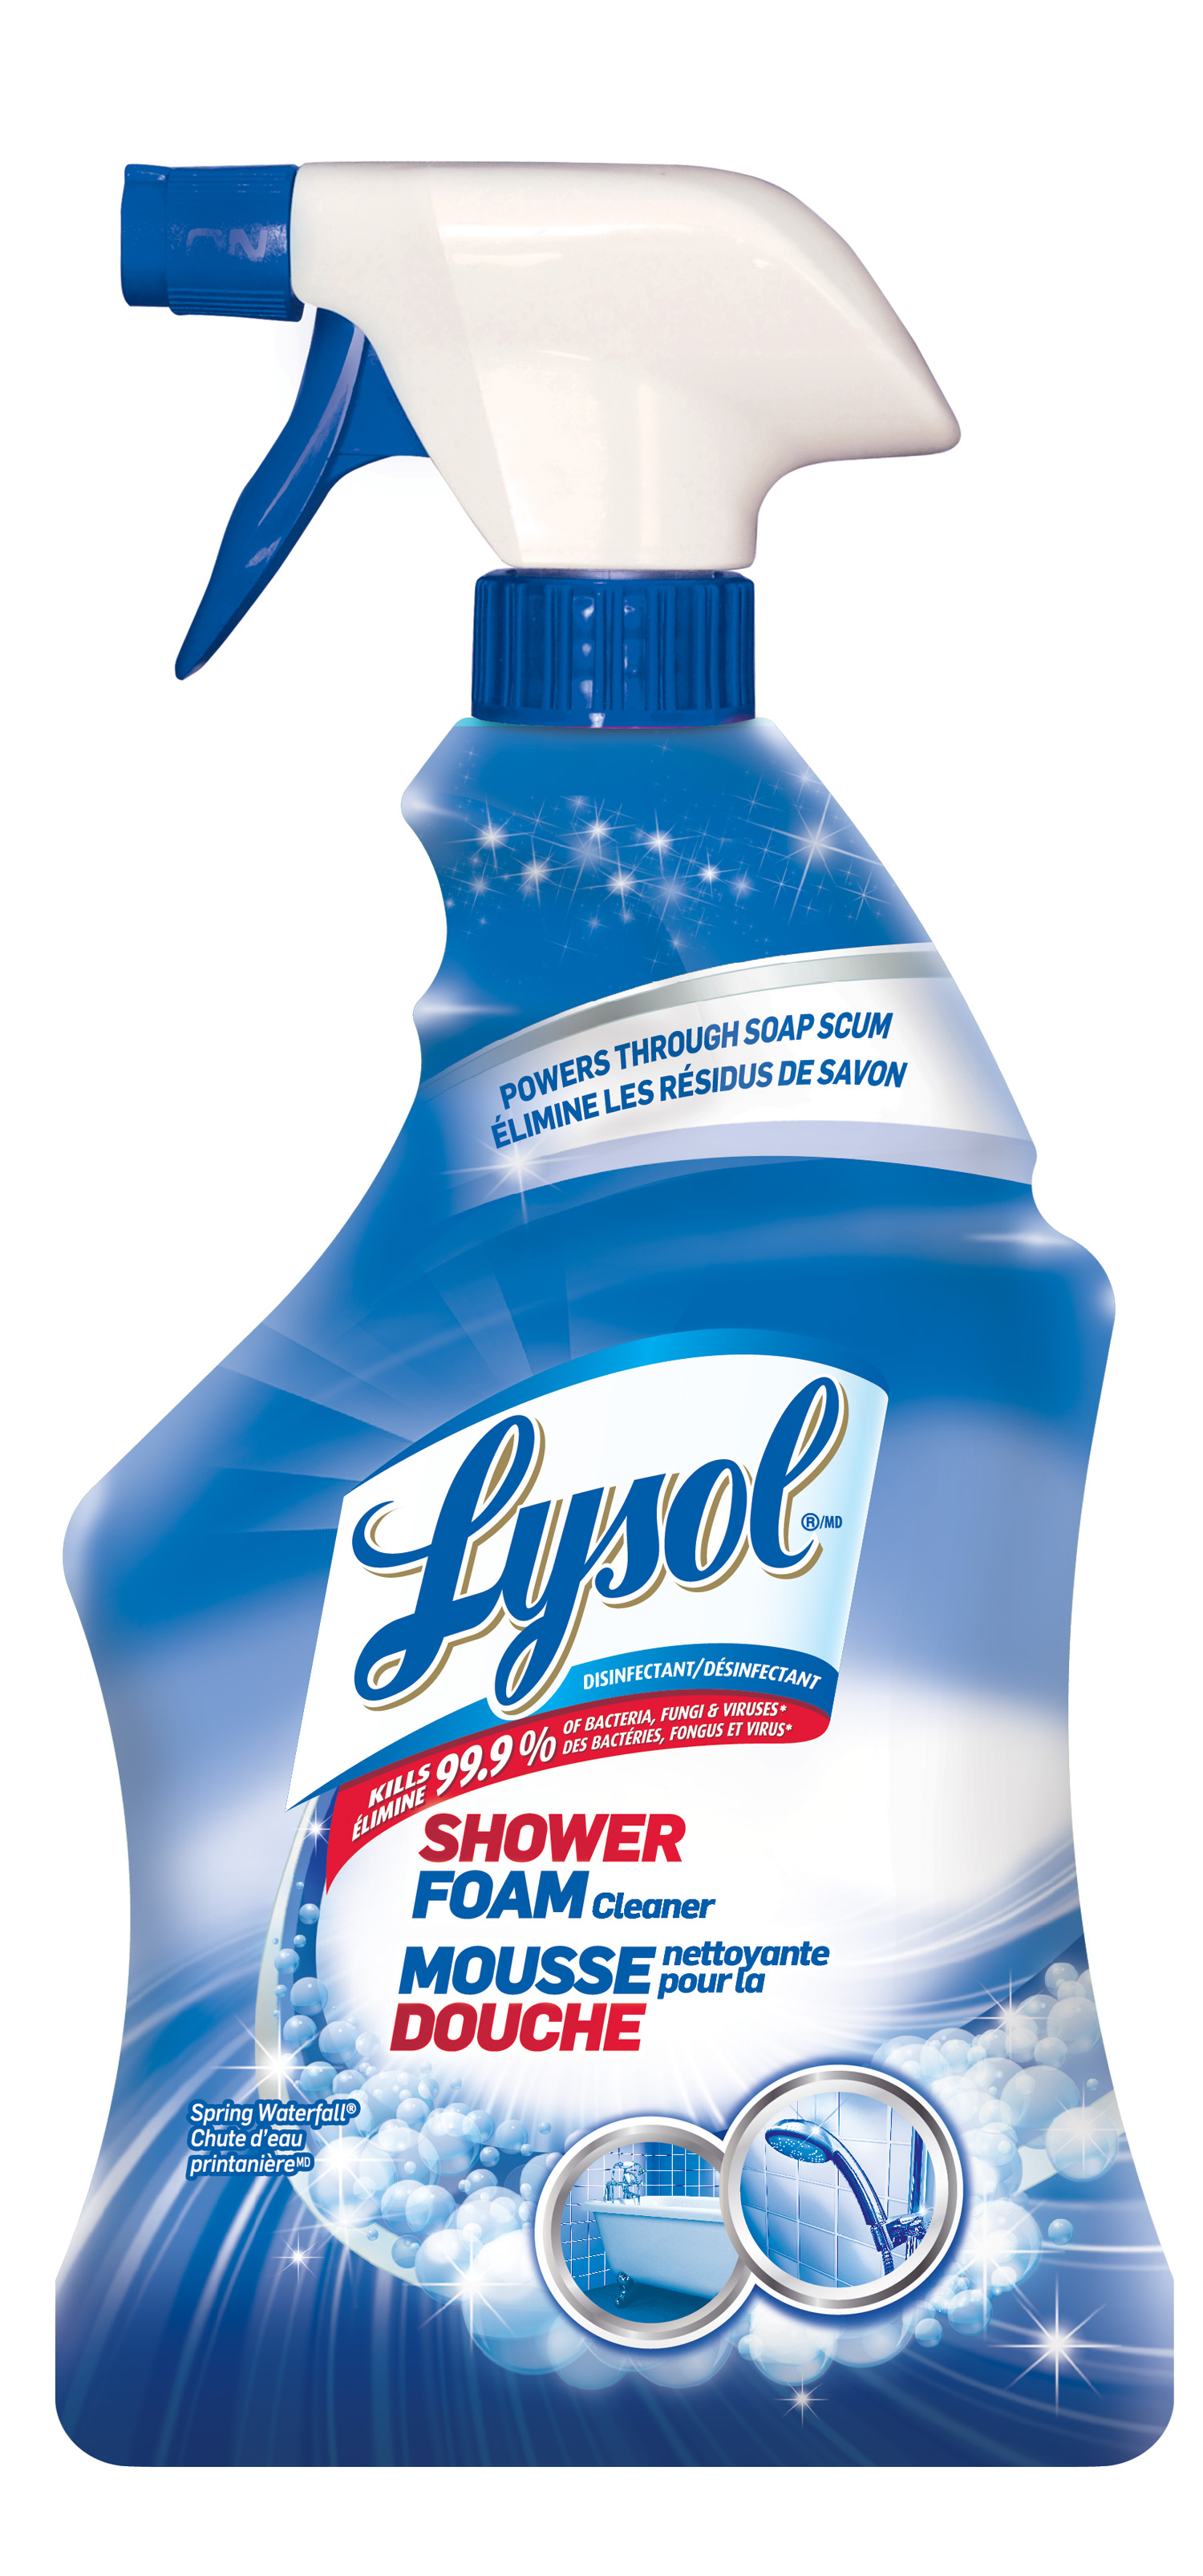 LYSOL® Disinfectant Shower Foam Cleaner - Trigger - Spring Waterfall (Canada)